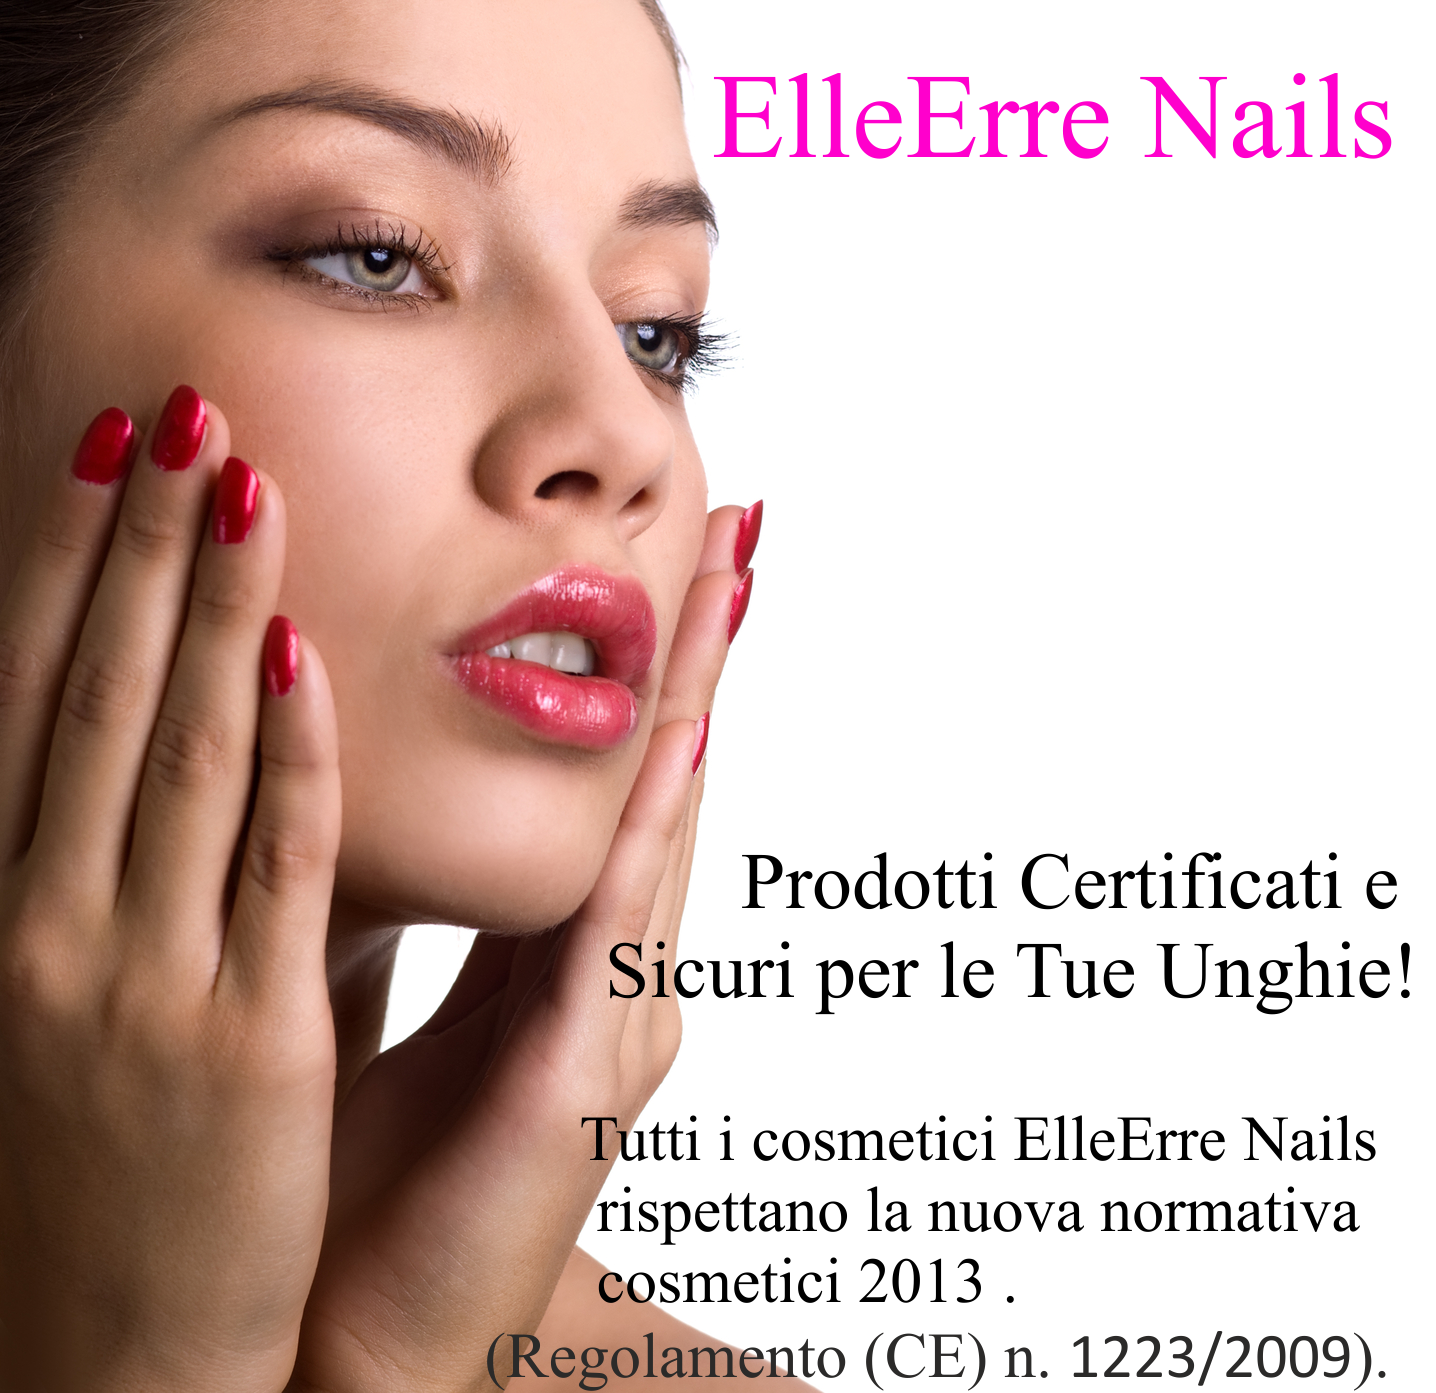 nails products certificate